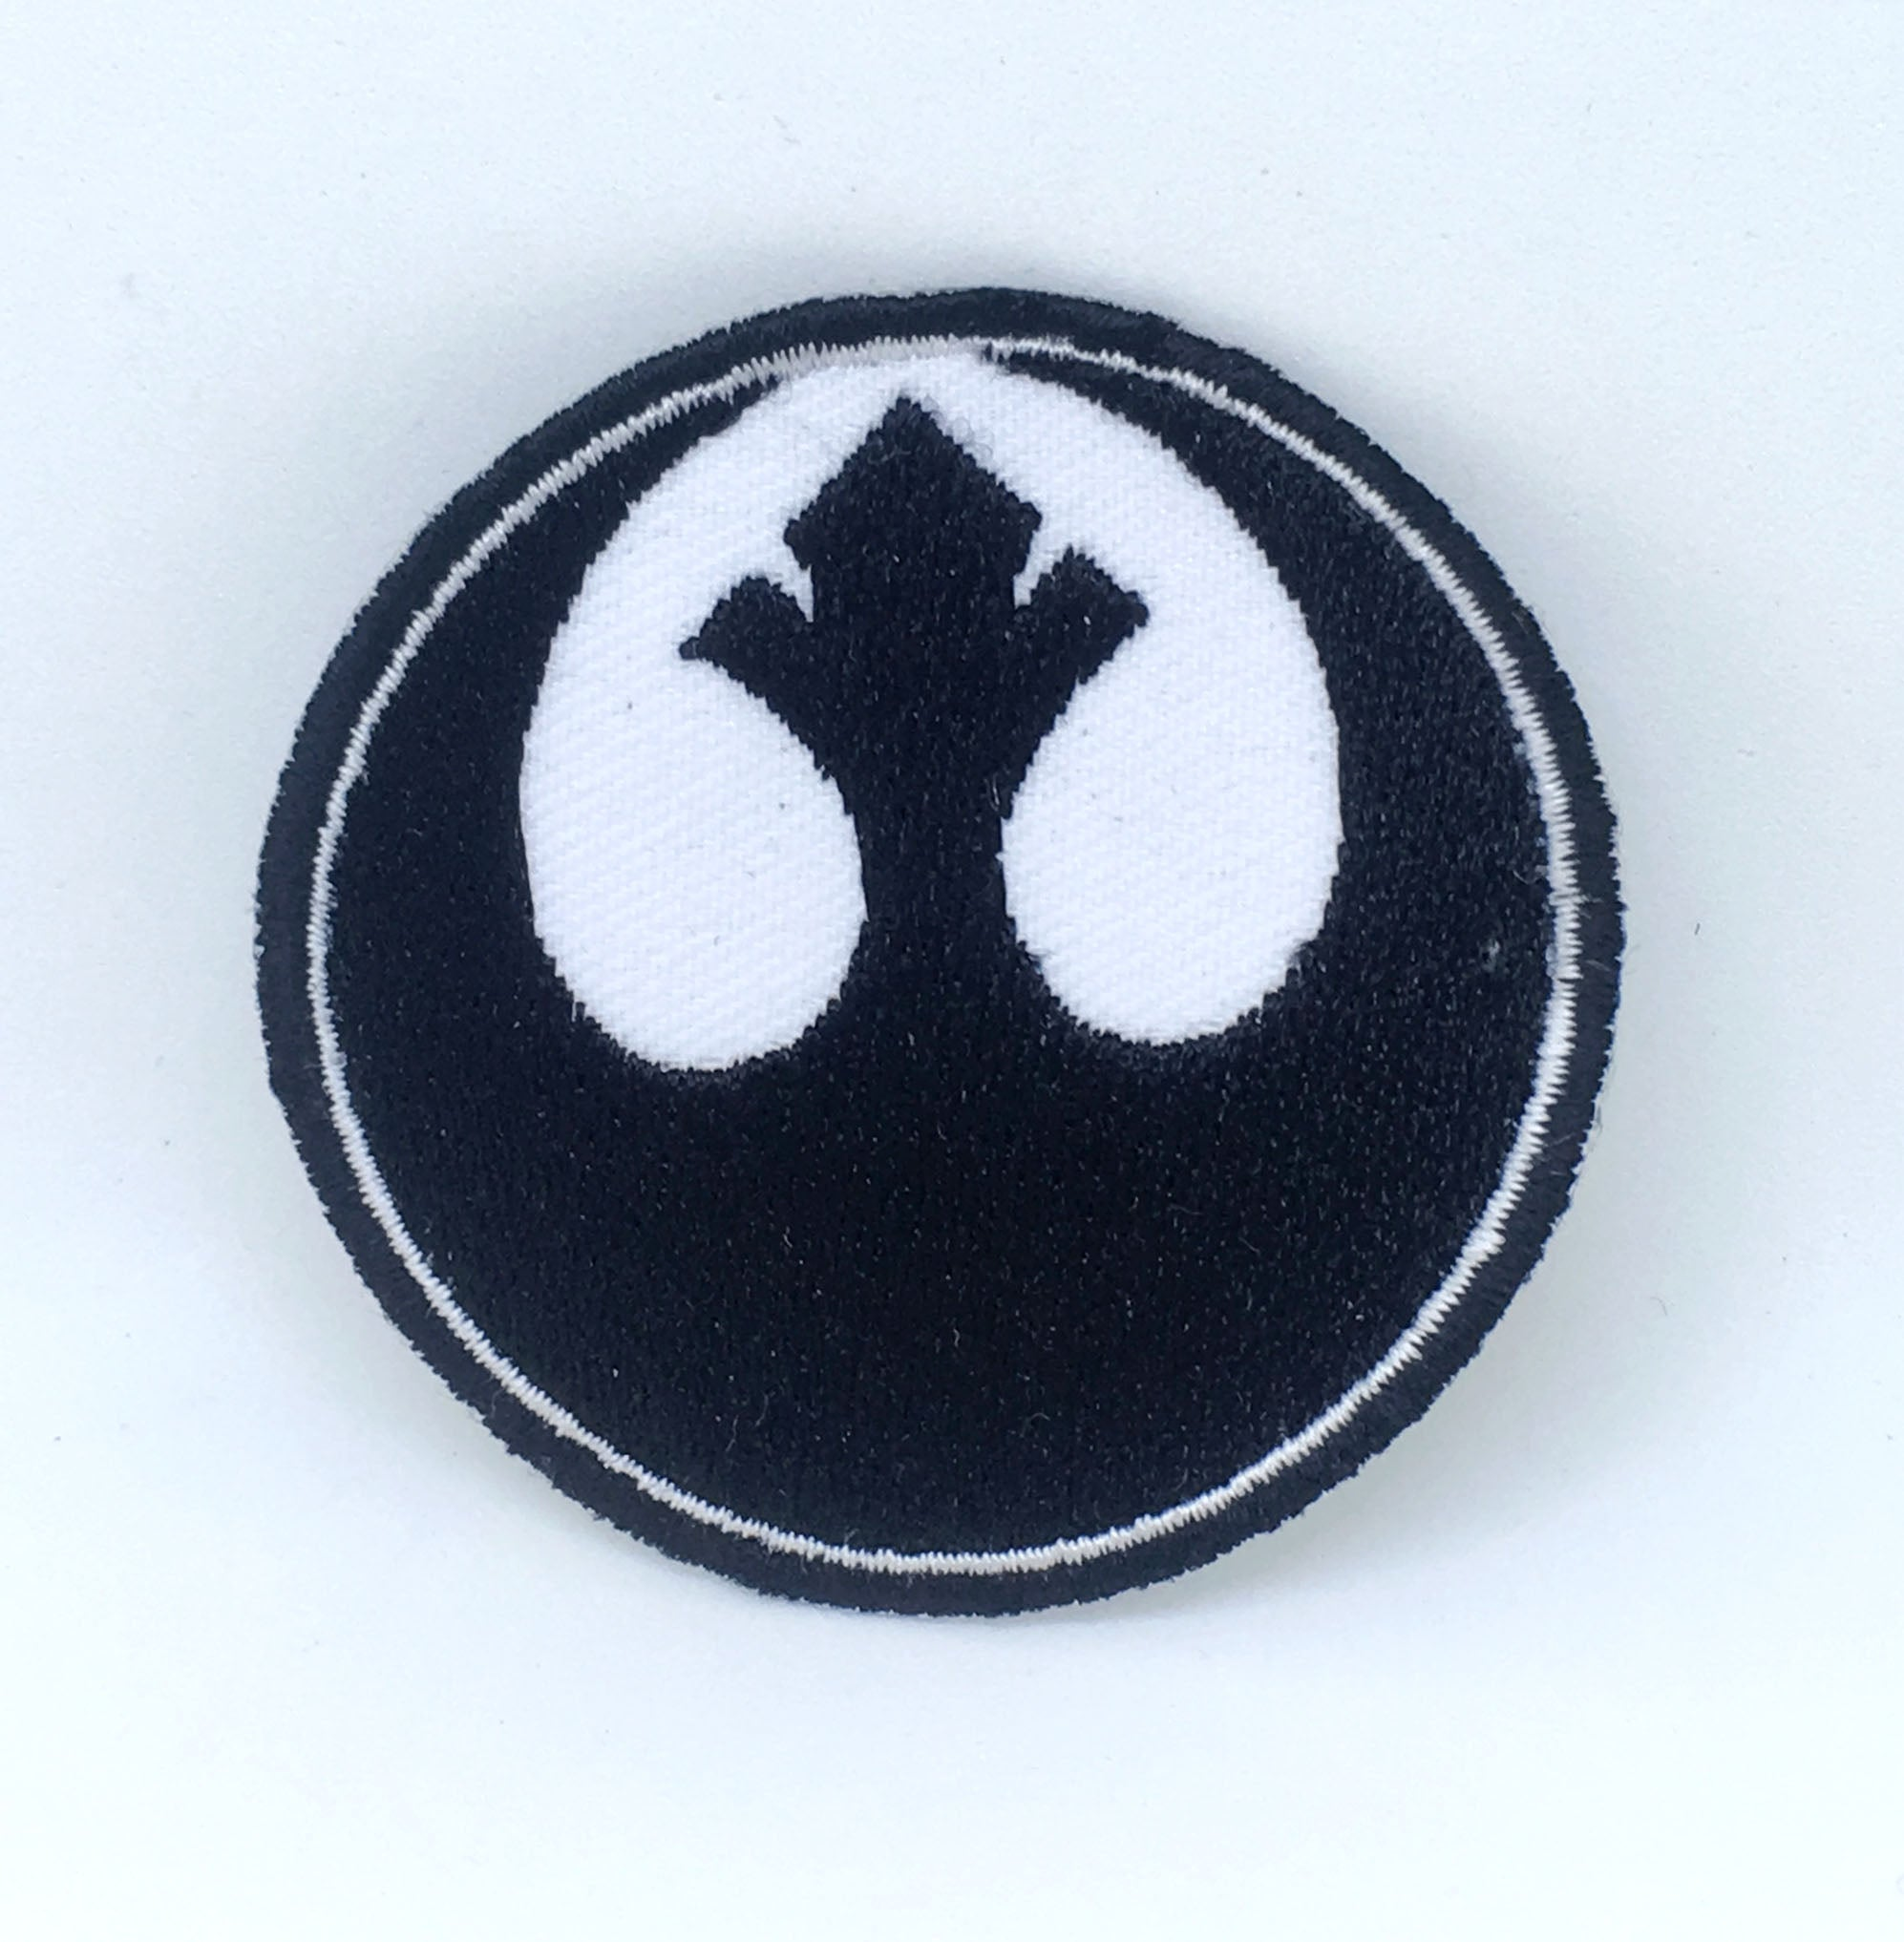 STAR WARS Movies Iron or Sew on Embroidered Patches - Rebel Alliance Black with White Background